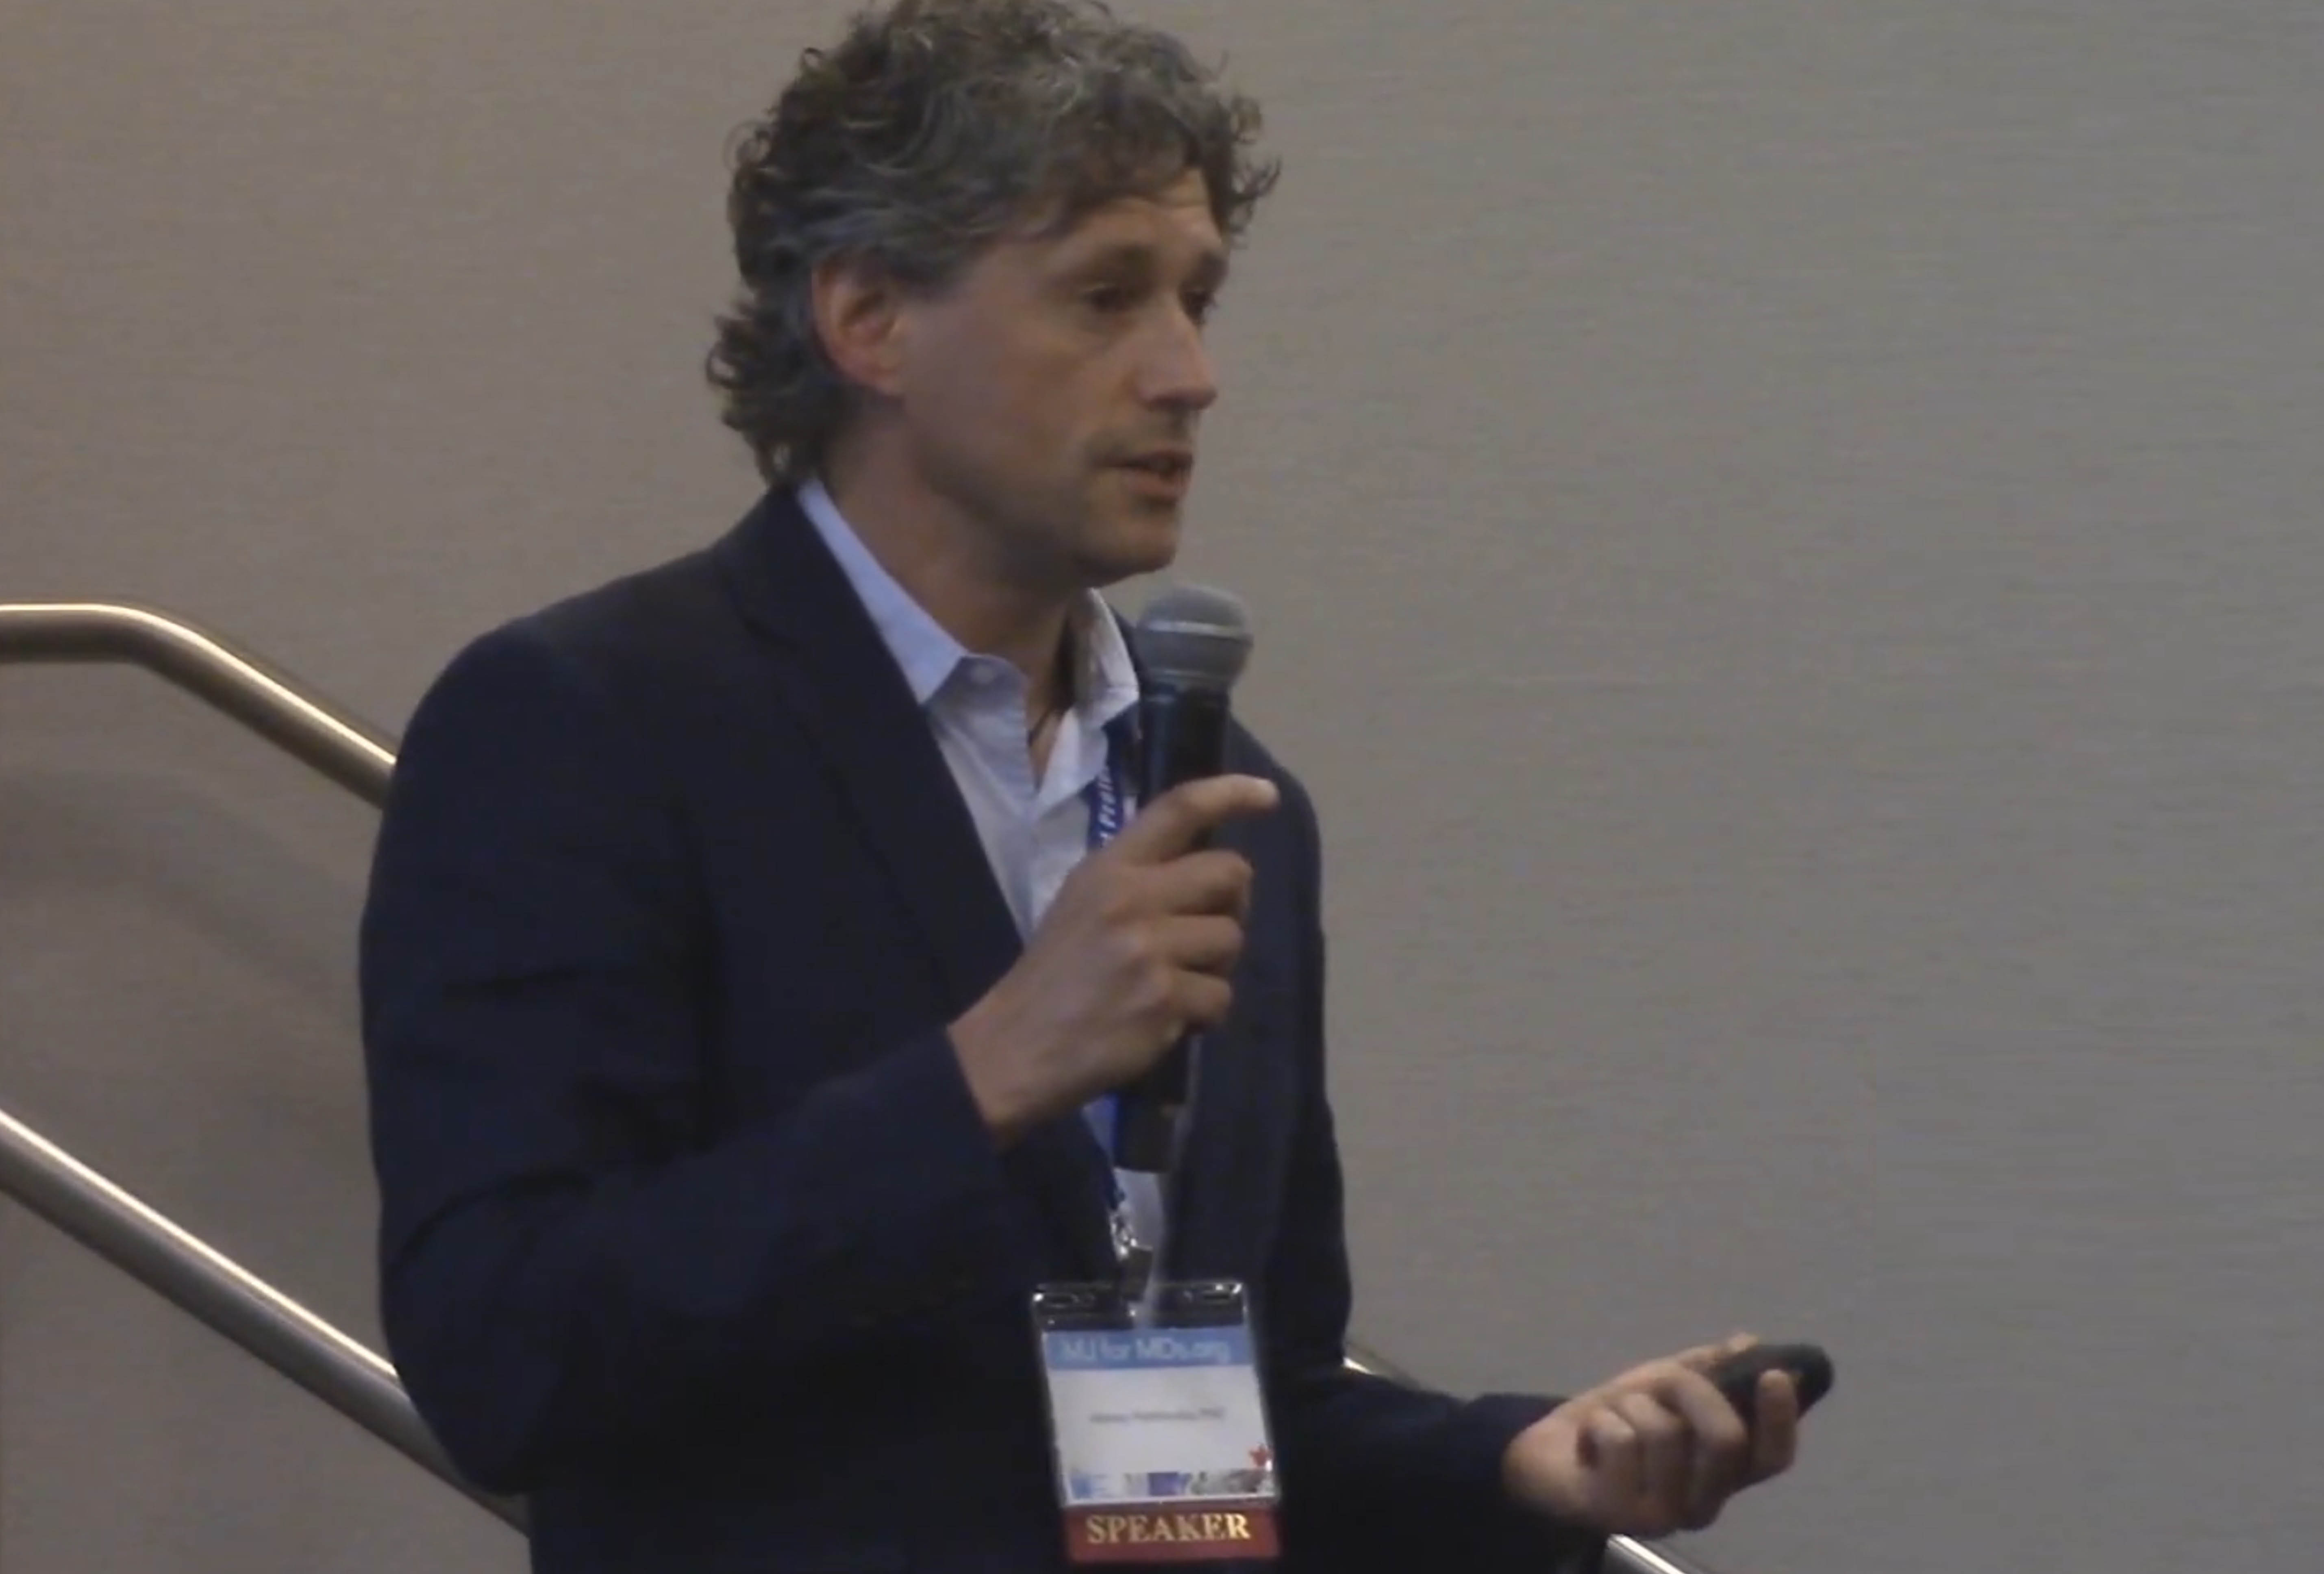 Dr. Alexey Peshkovsky presenting at Marijuana For Medical Professionals Conference, 2018